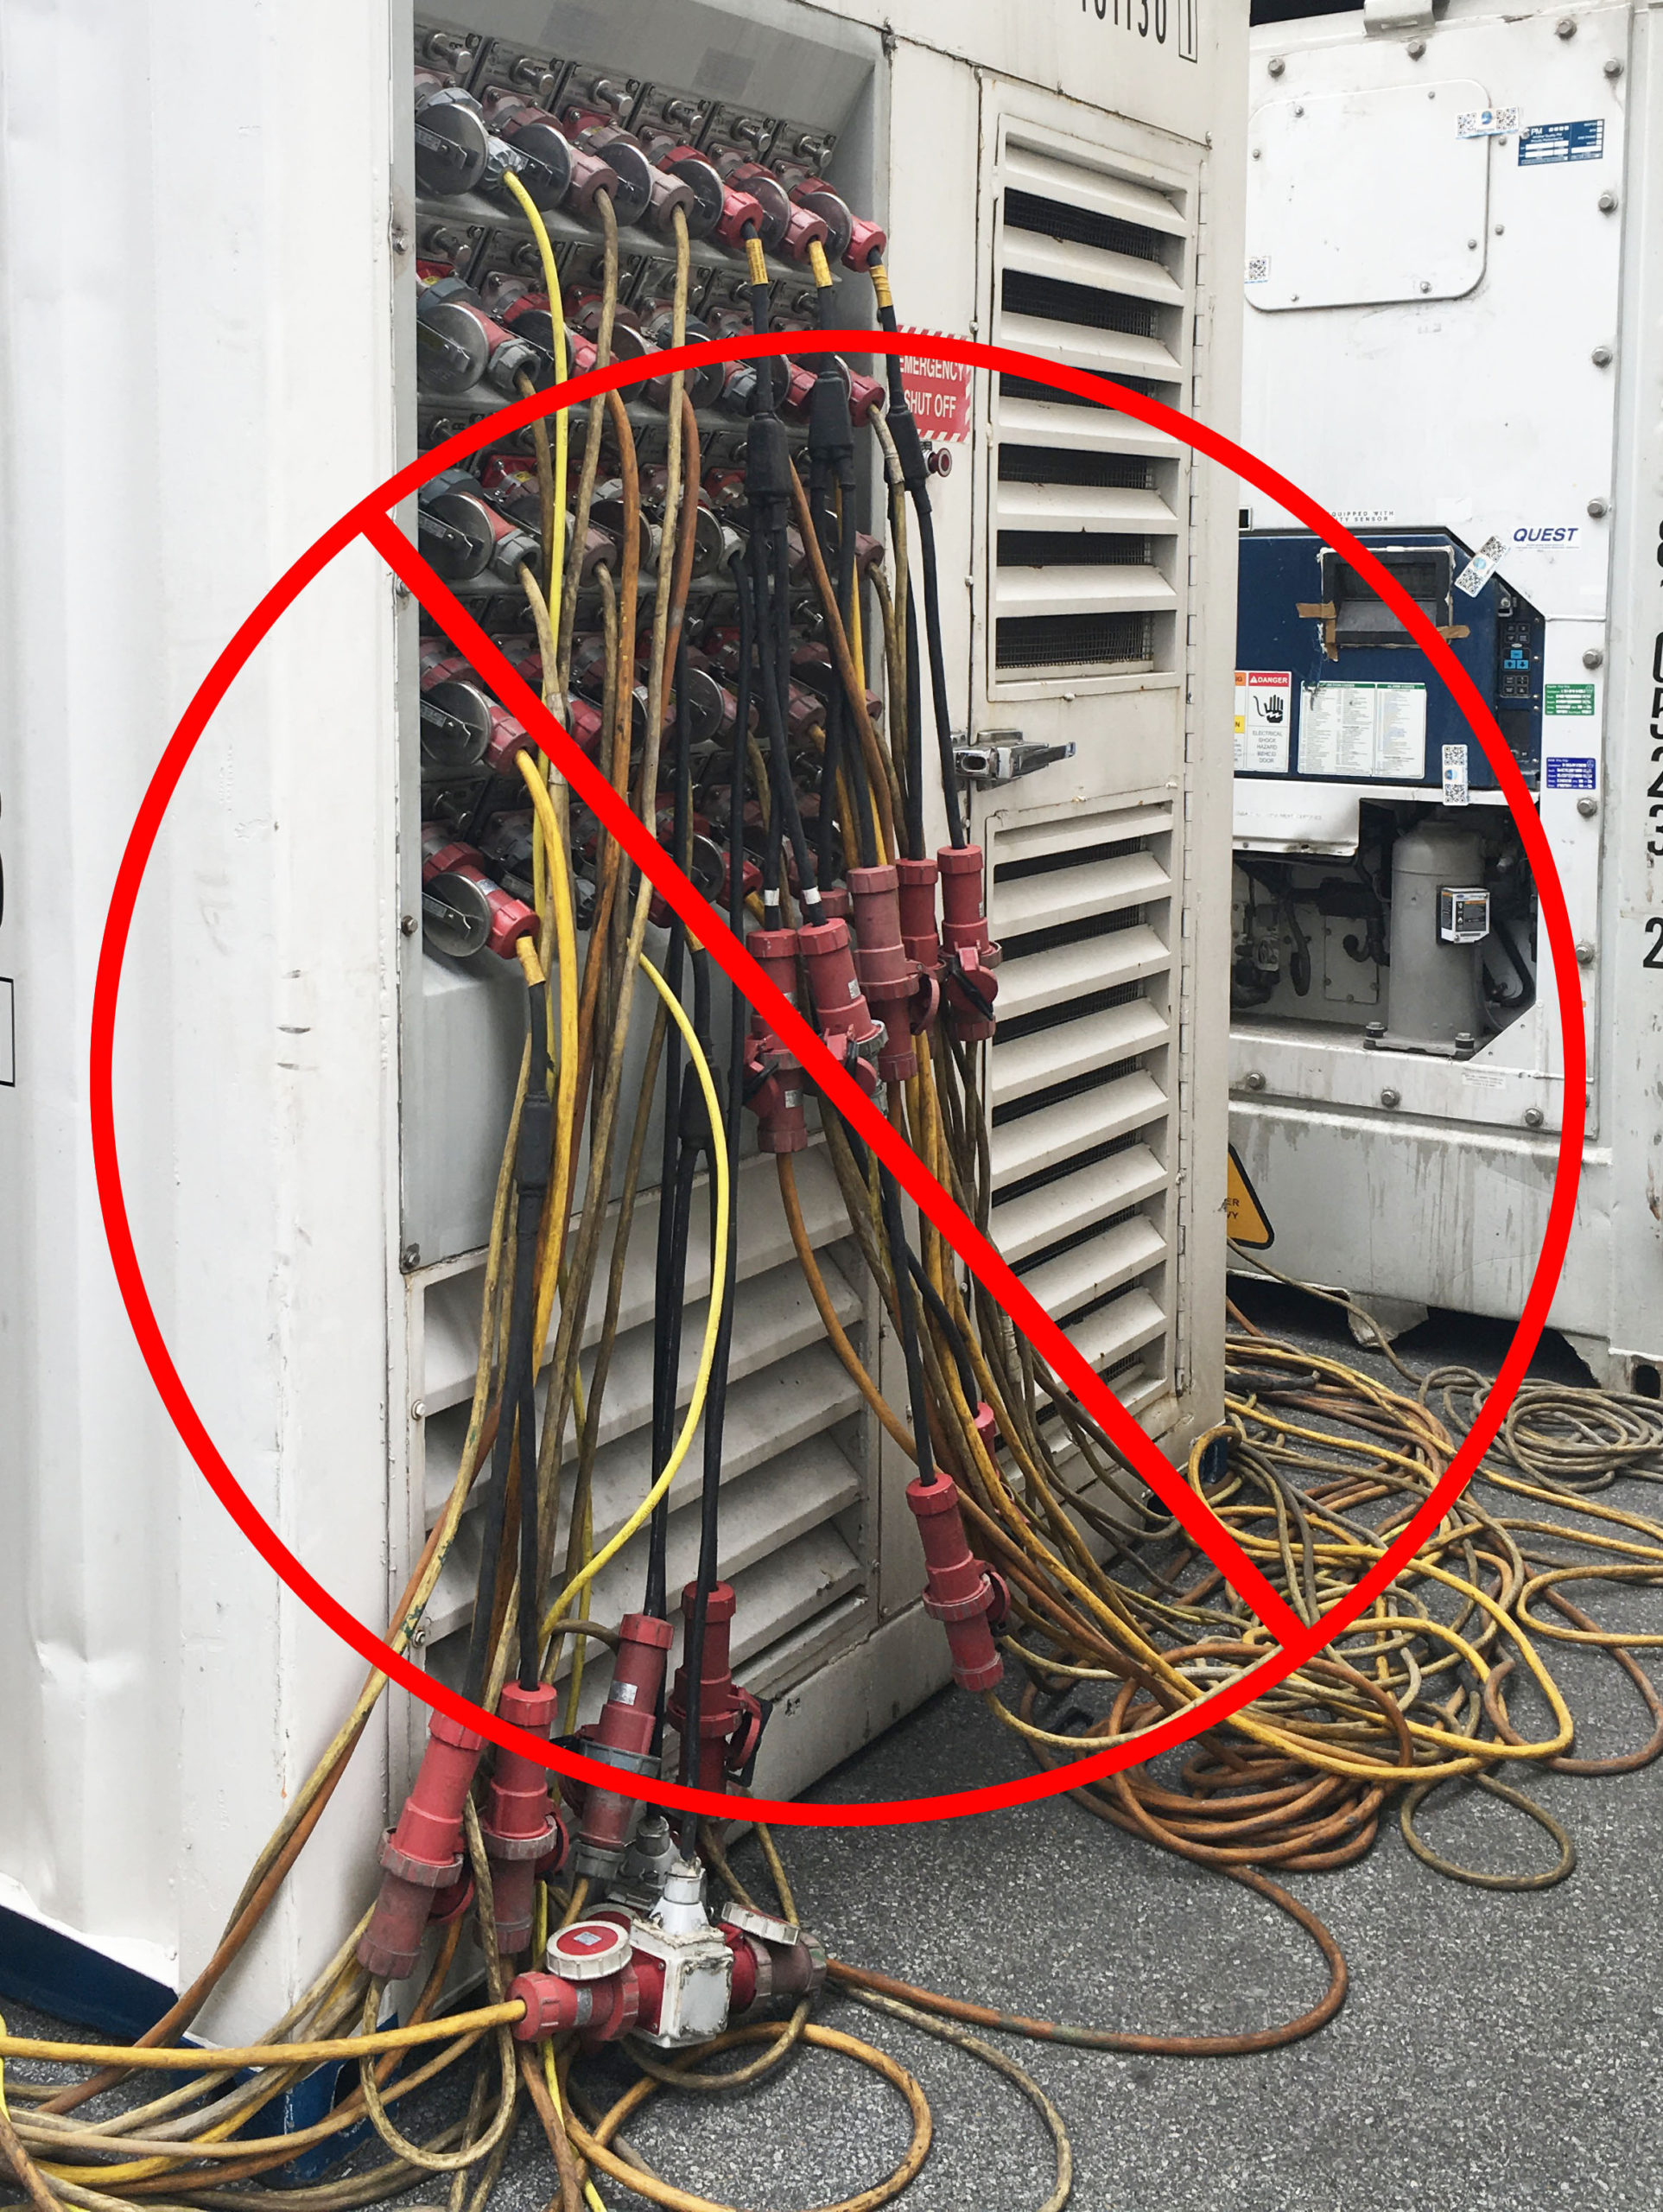 Overloading a power pack with splitters